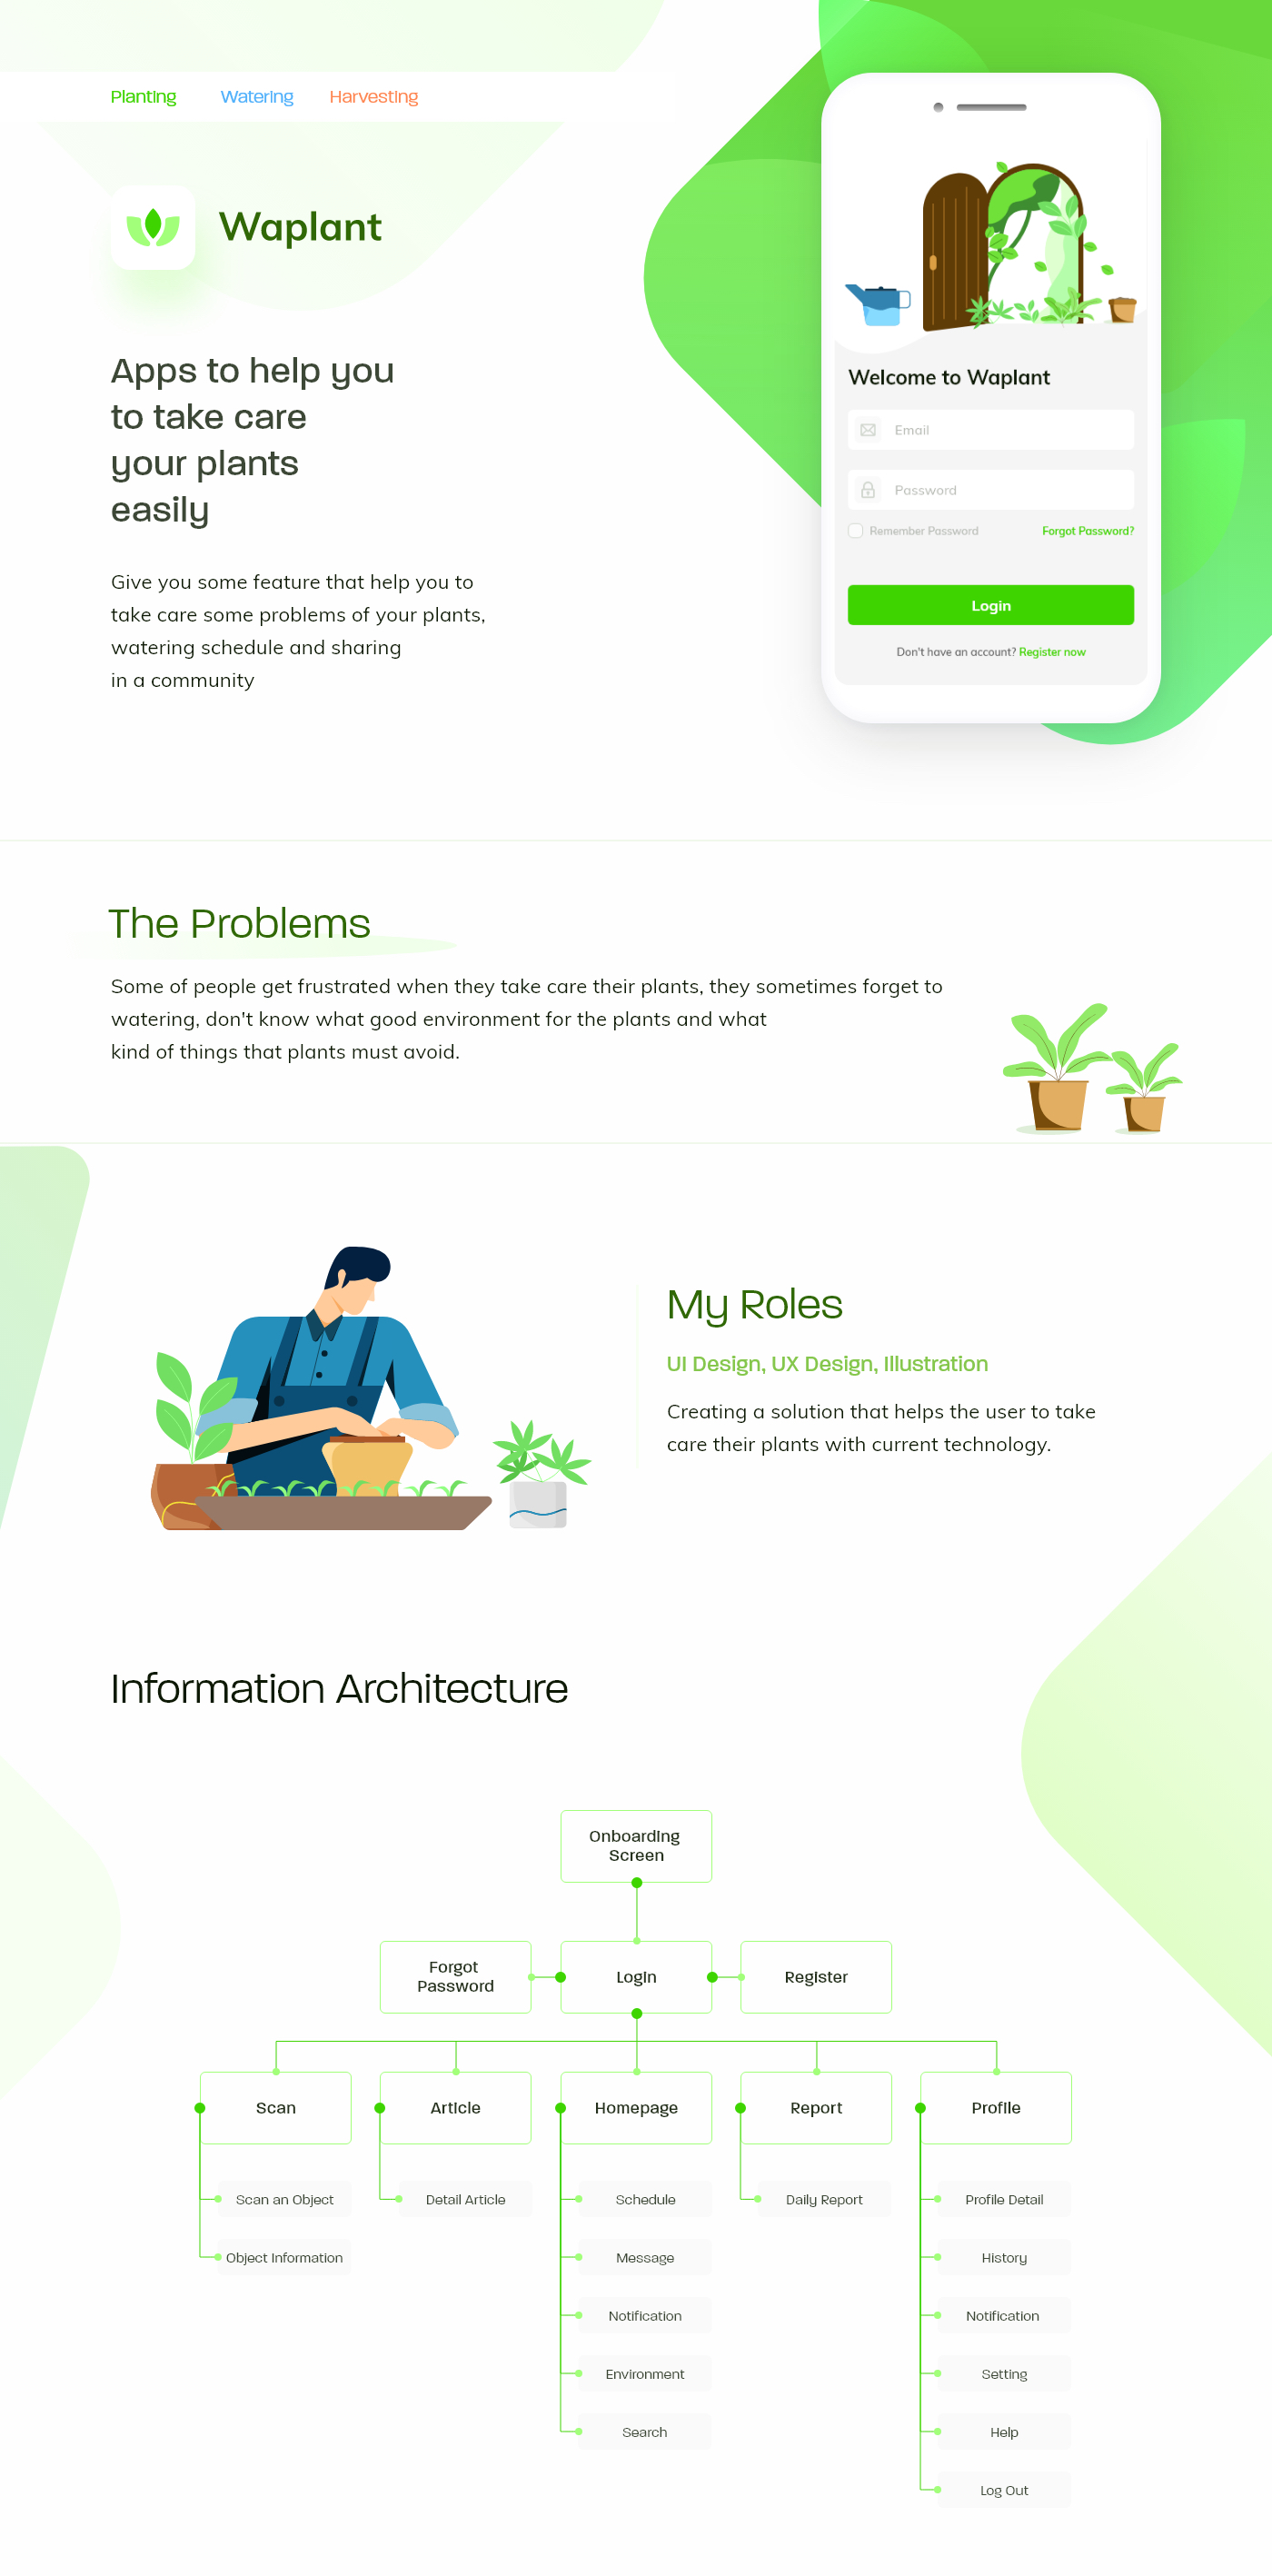 Waplant Plants - Free UI Kit for Adobe XD - Minimal and clean app design. Waplant Plants helps you to take care your plants easily.